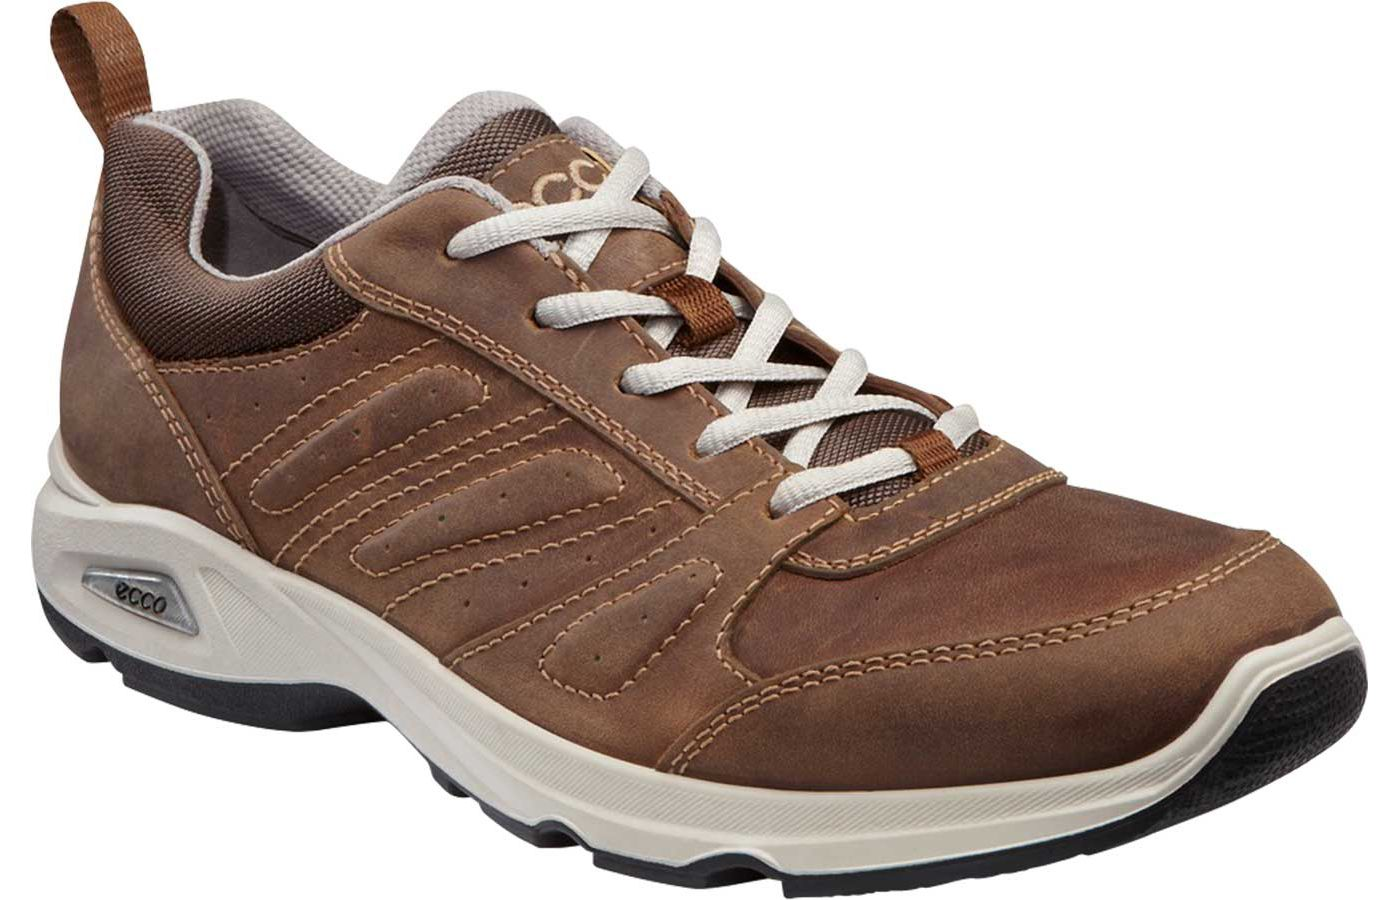 ECCO Men's Light III Casual Shoes